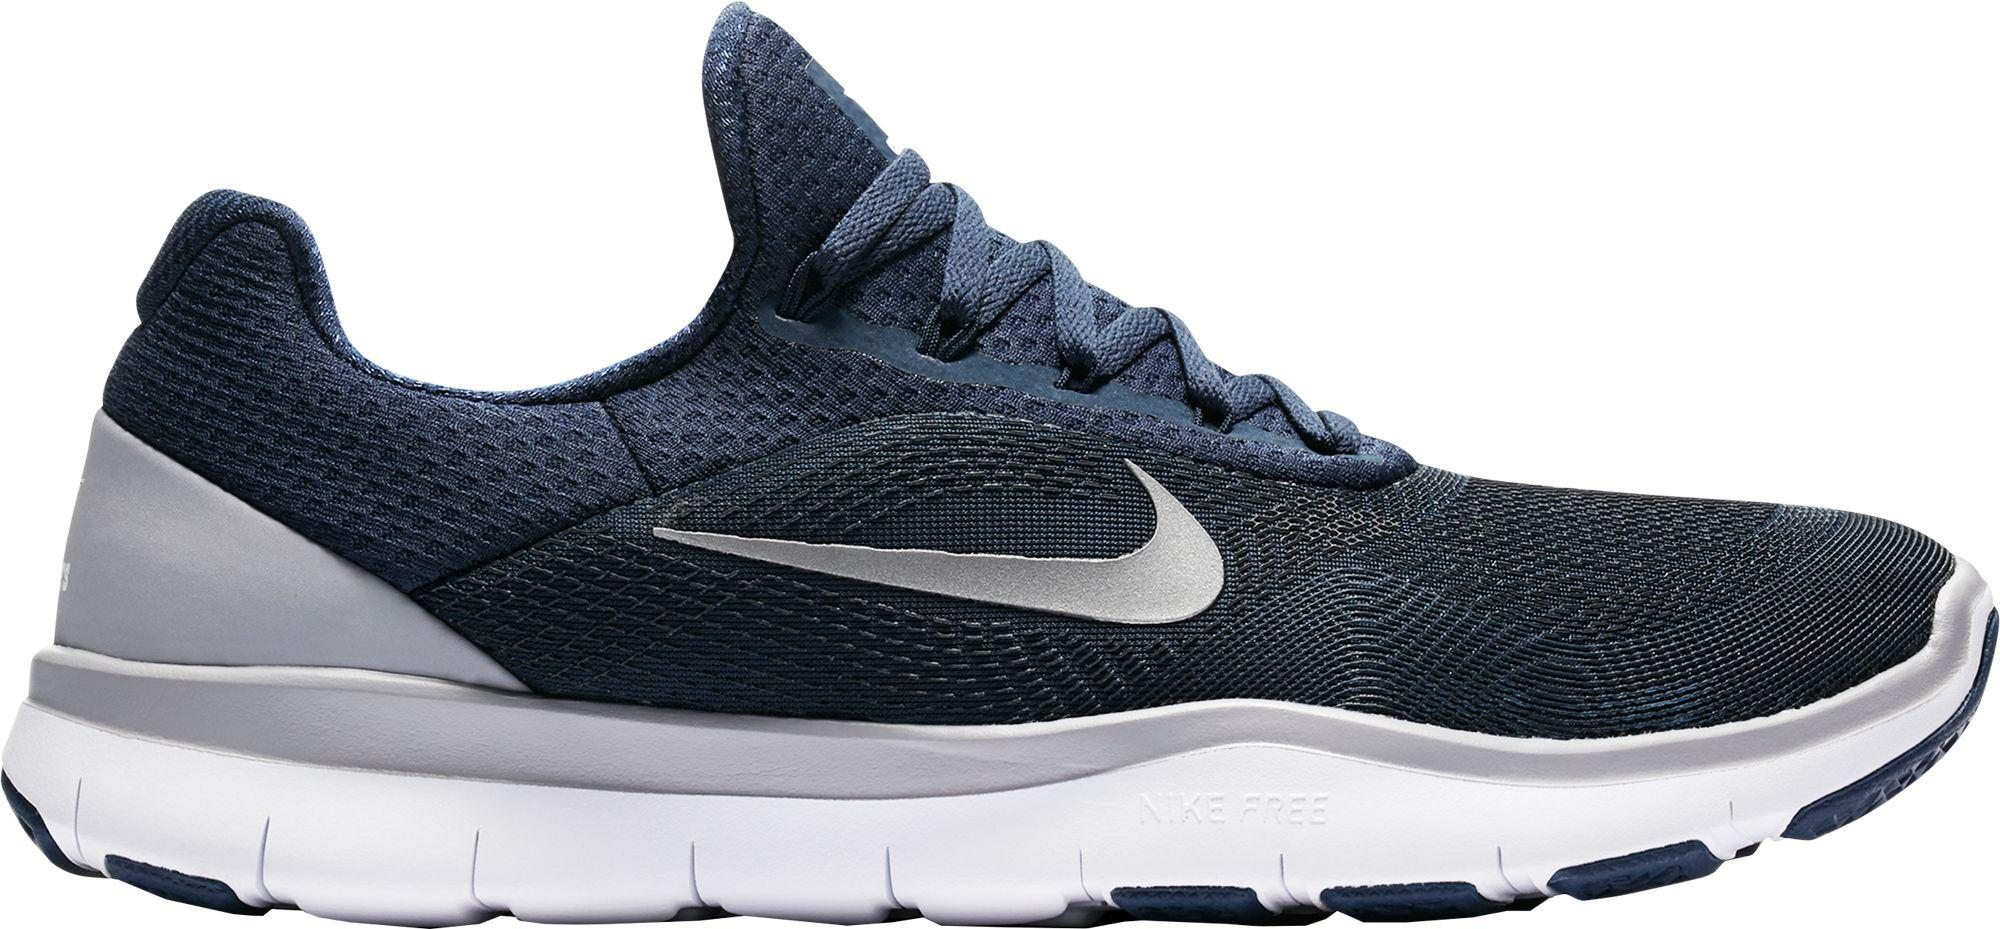 7e923f87a6ad Lyst - Nike Free Trainer V7 Nfl Cowboys Training Shoes in Blue for Men